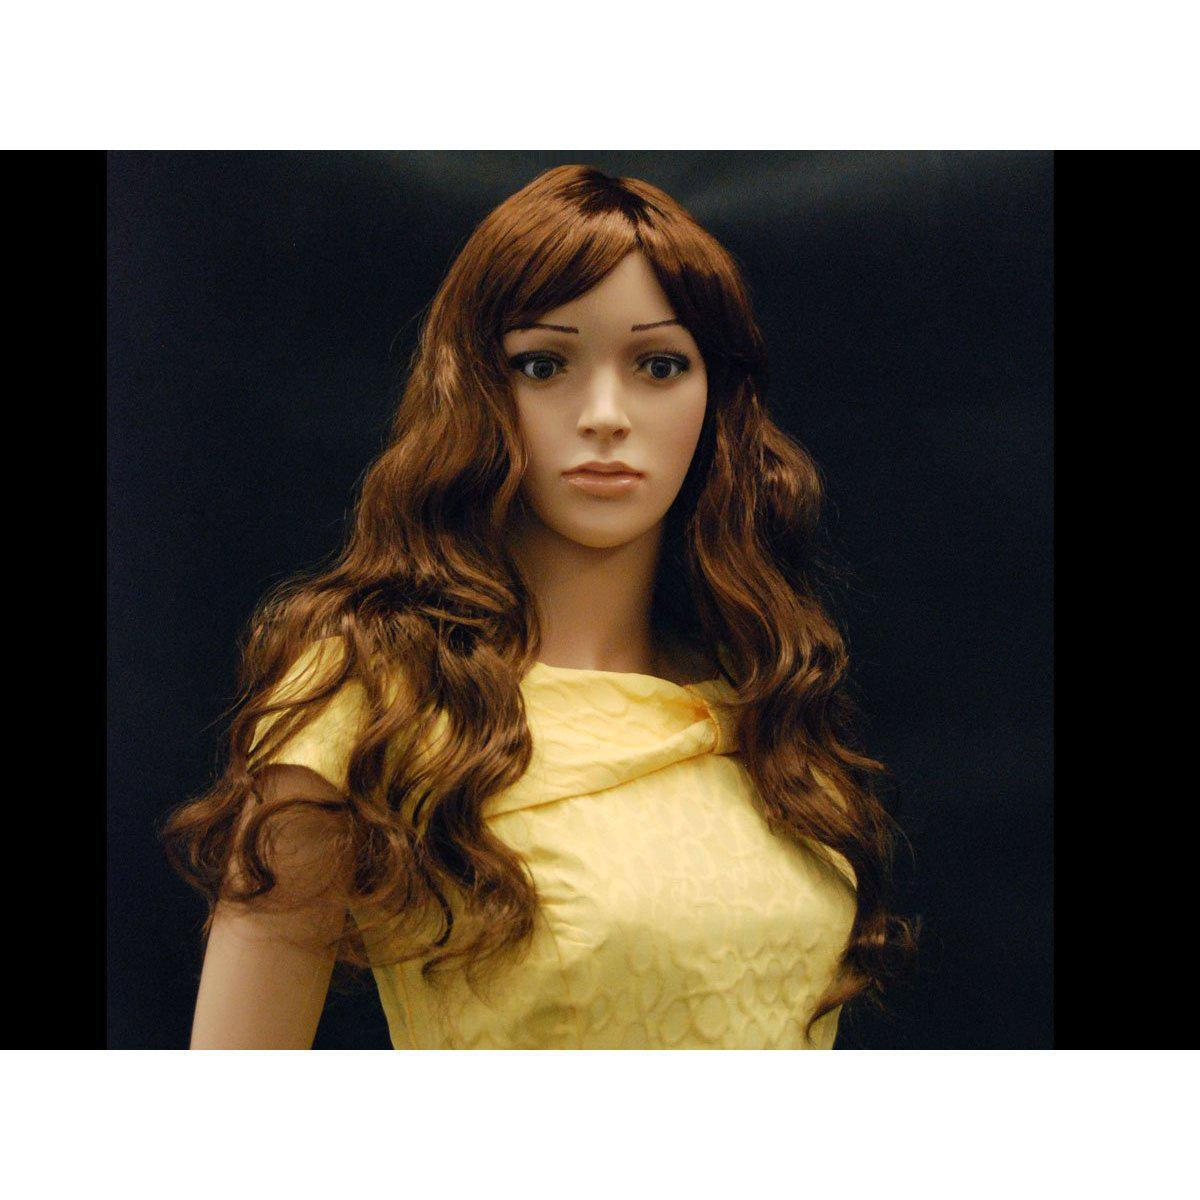 Mannequin Mall Female Wig #WG-T23M-P33 For Fashion Stores and Retail Shops